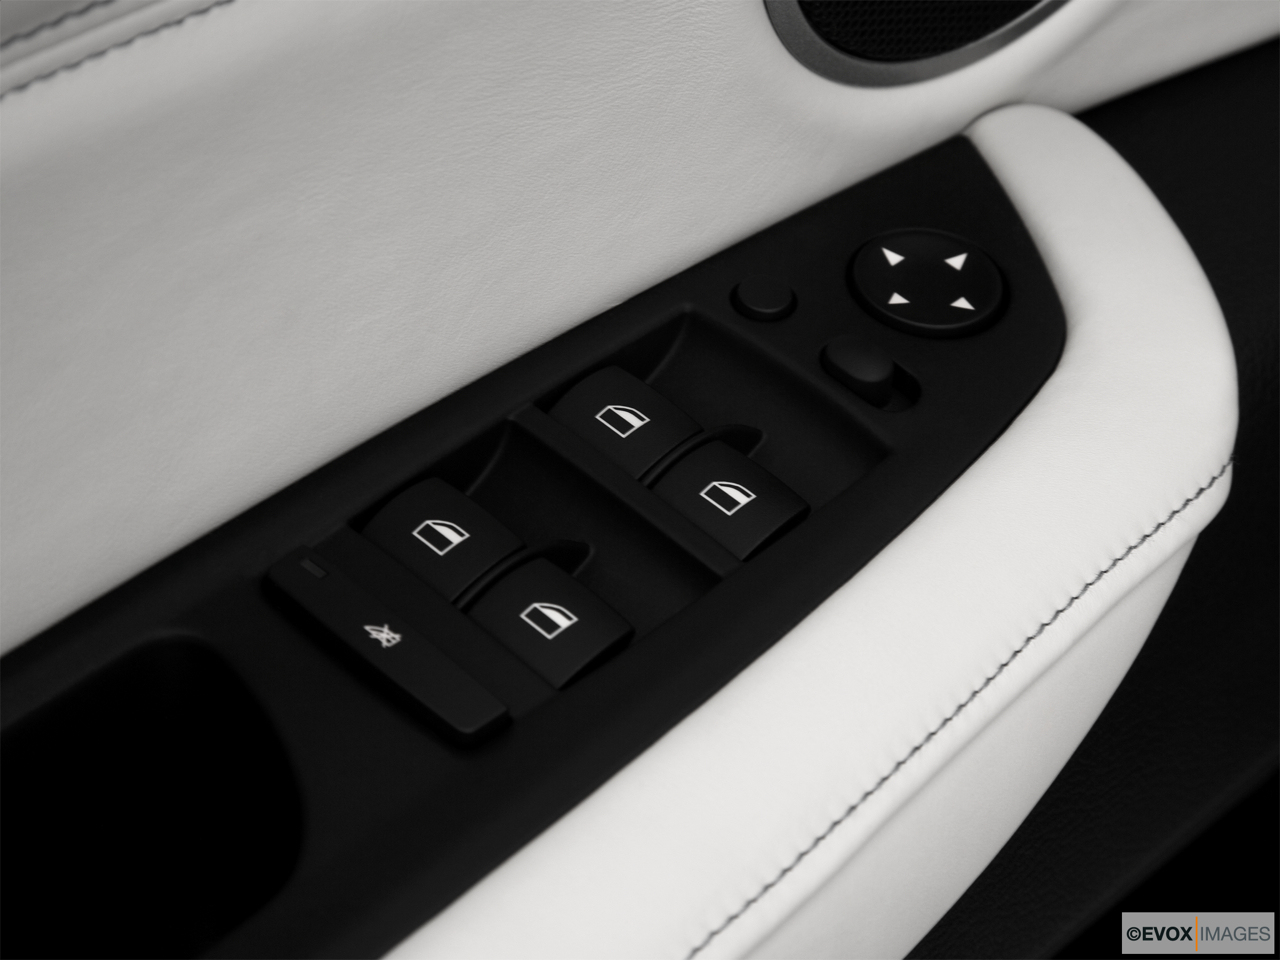 2010 BMW X6 Hybrid Base Driver's side inside window controls.